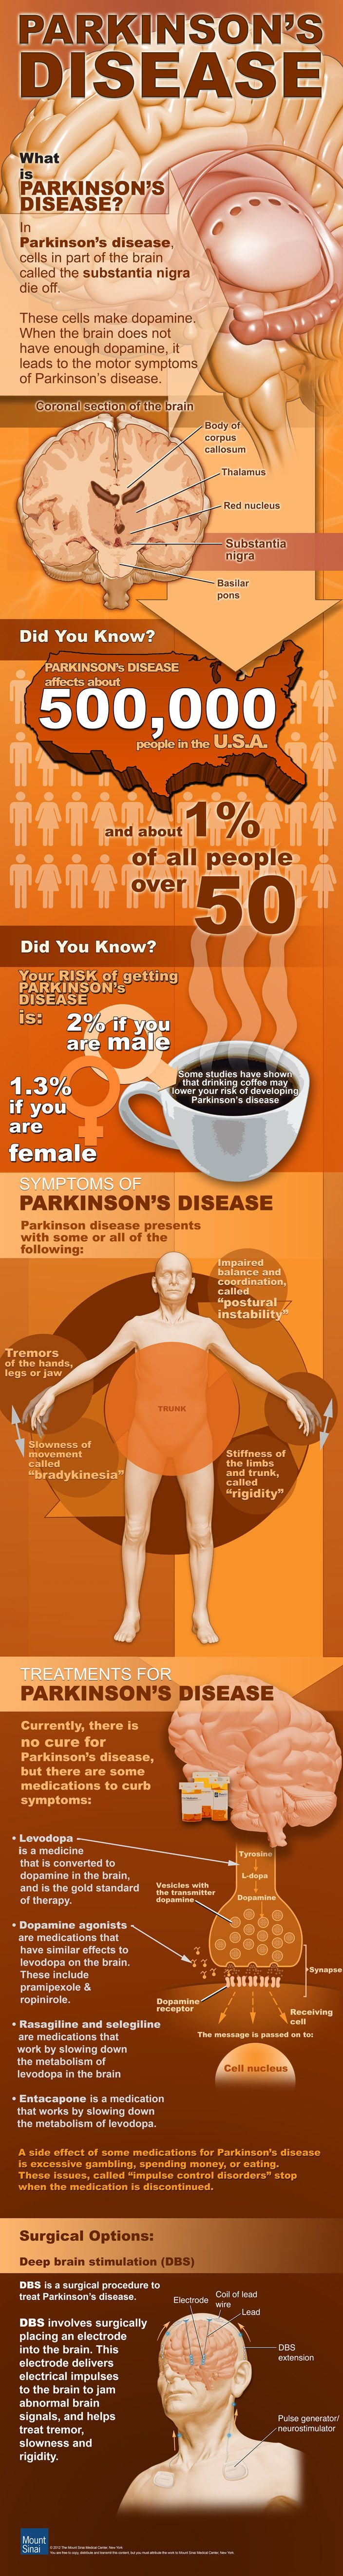 parkinsons disease and medical treatment options essay Chapter 2: medical and surgical treatment options   dr parkinson's 1817  essay, and our understanding of the disease from the earliest days until the  1970s.